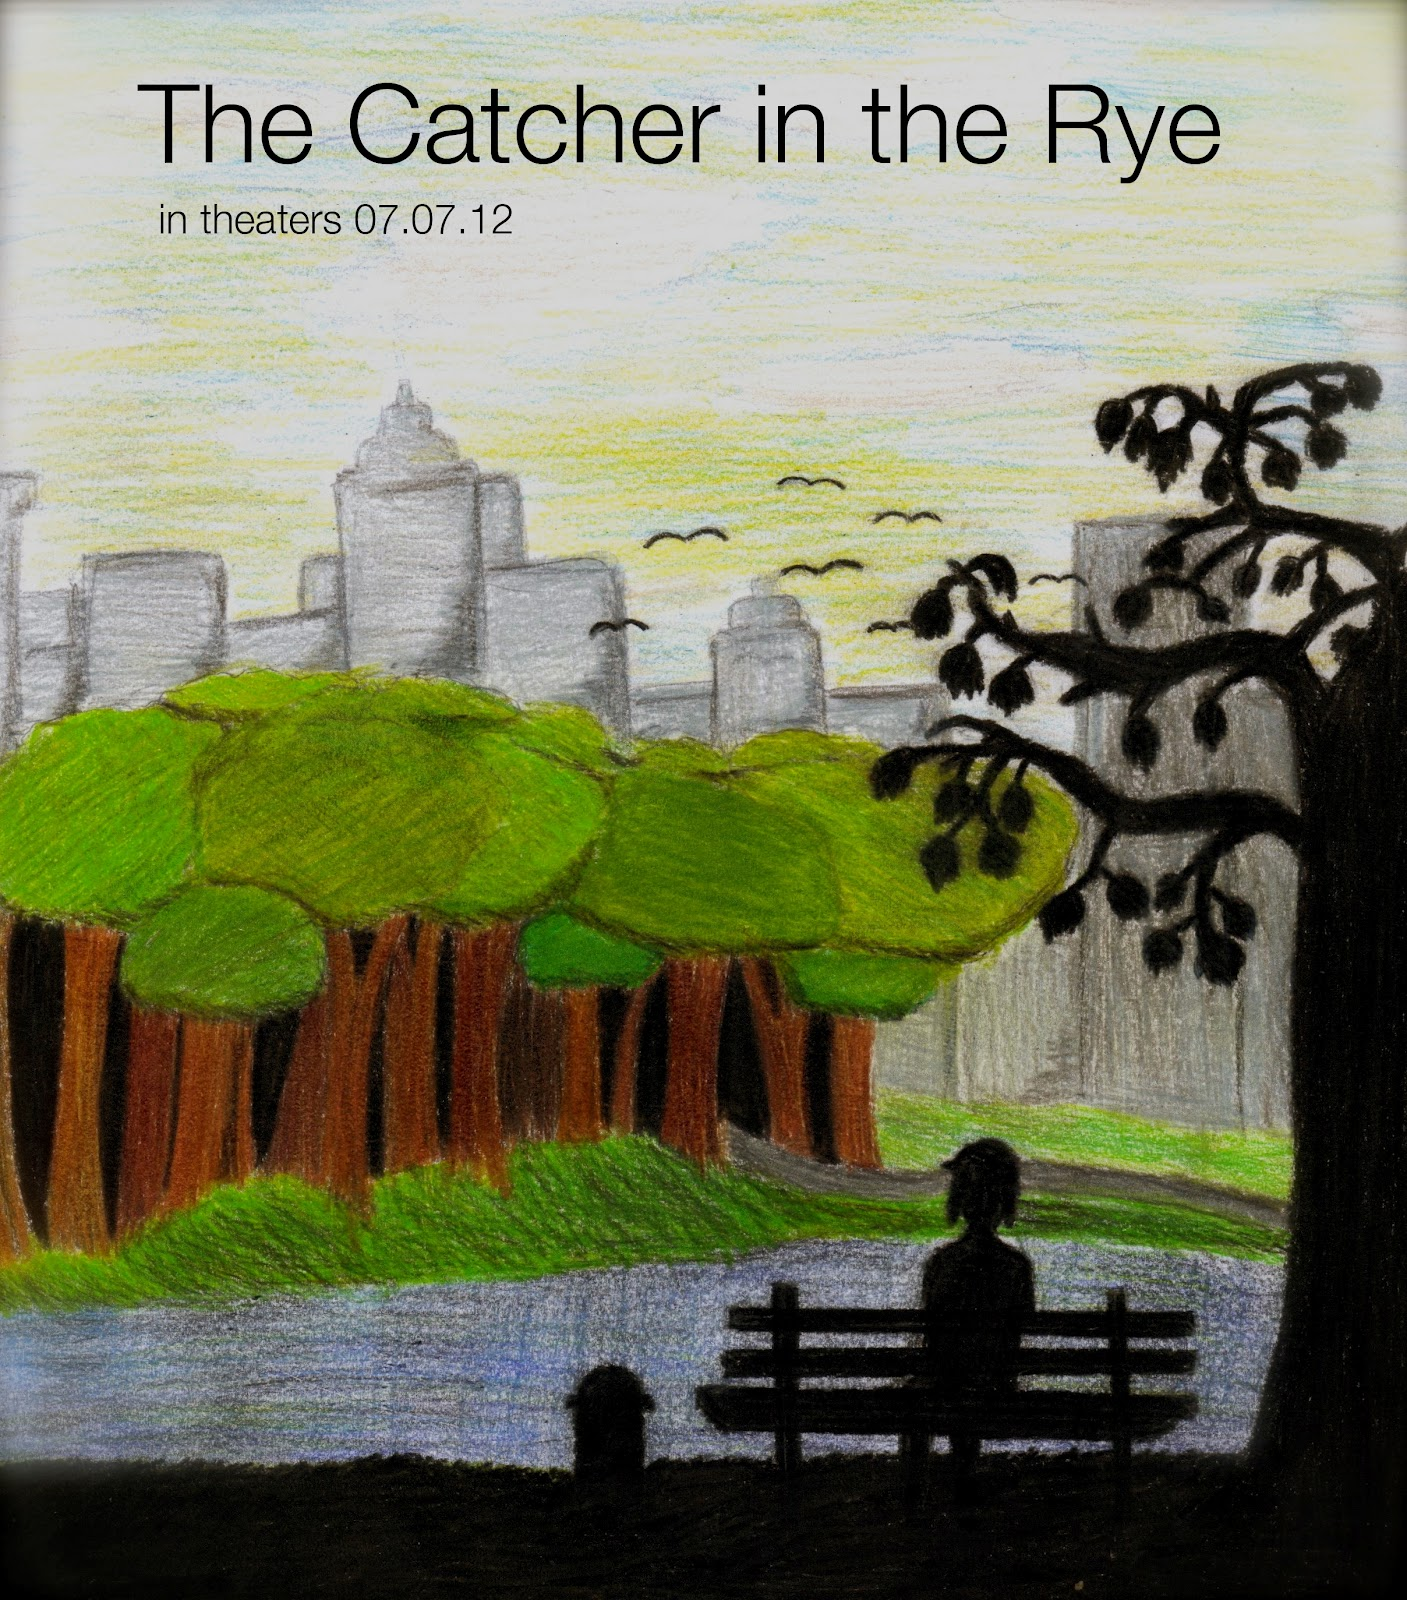 catcher in the rye song project Get an answer for 'i am doing a project where i need to think of 6 songs holden caulfield would like what are some suggestions for songs that he would likecatcher in the rye' and find homework help for other the catcher in the rye questions at enotes.